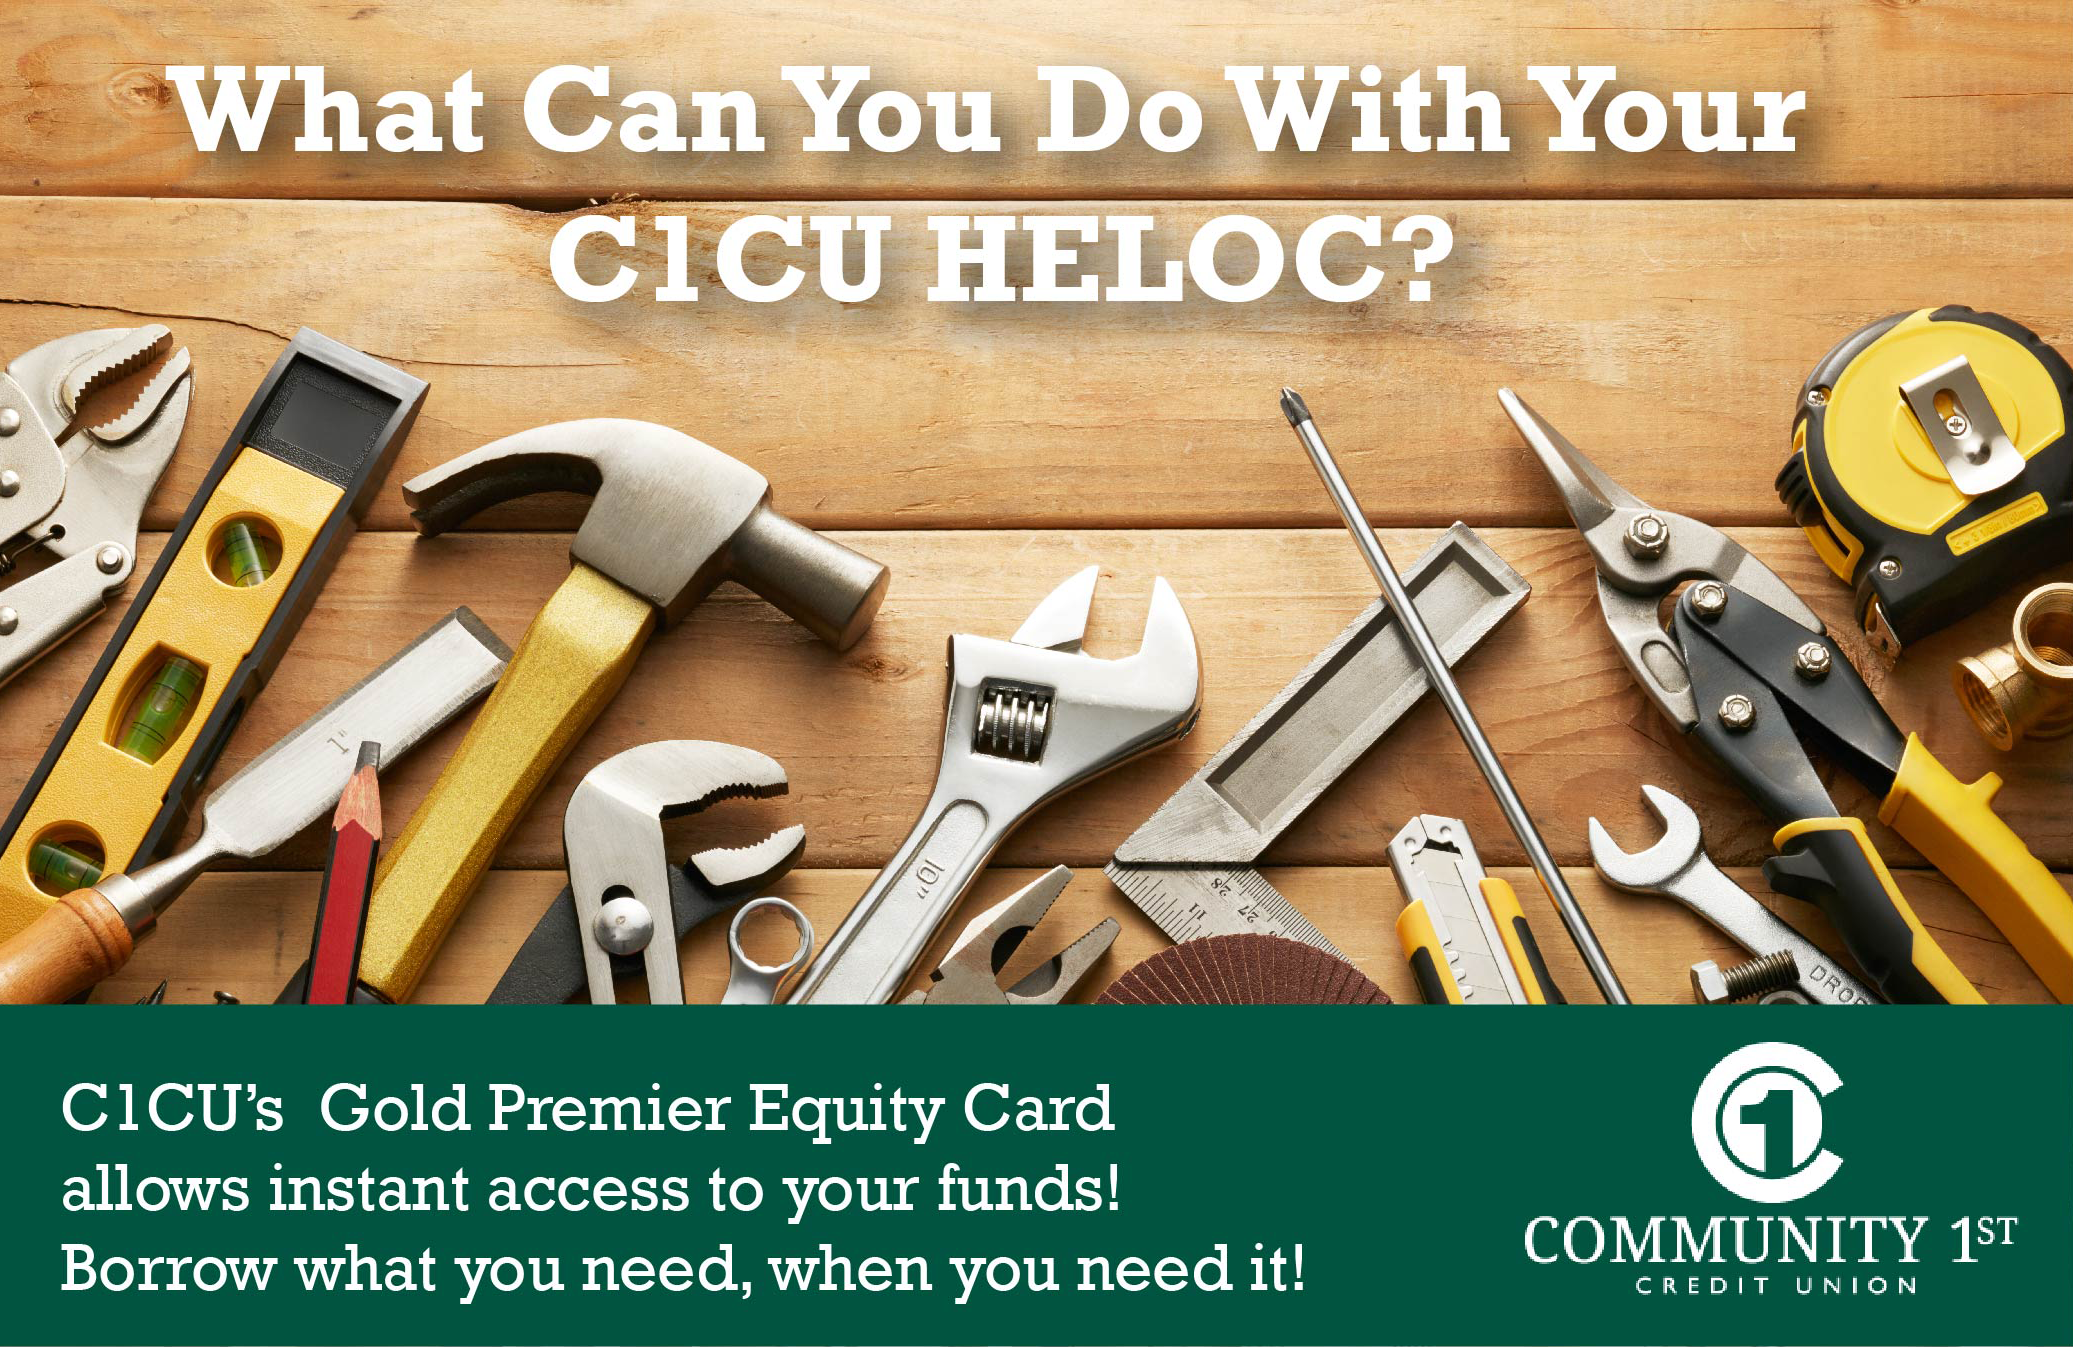 Home Equity Line of Credit Promotion